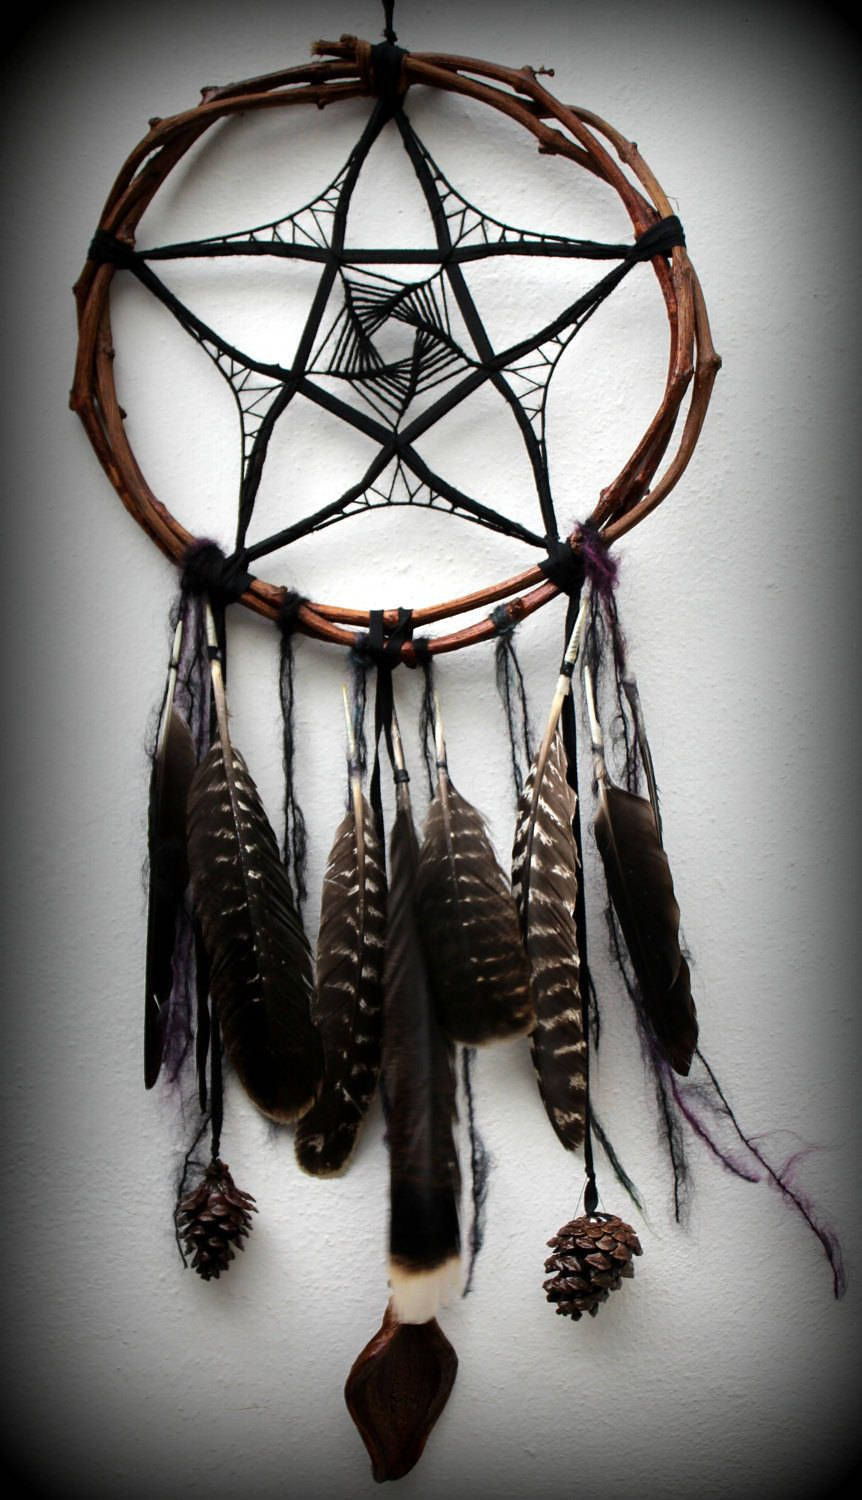 Photo of pentacle dark gothic magic black raven dreamcatcher home decor mystical feathers nature natural flower pentagram 5A sacred geometry symbol